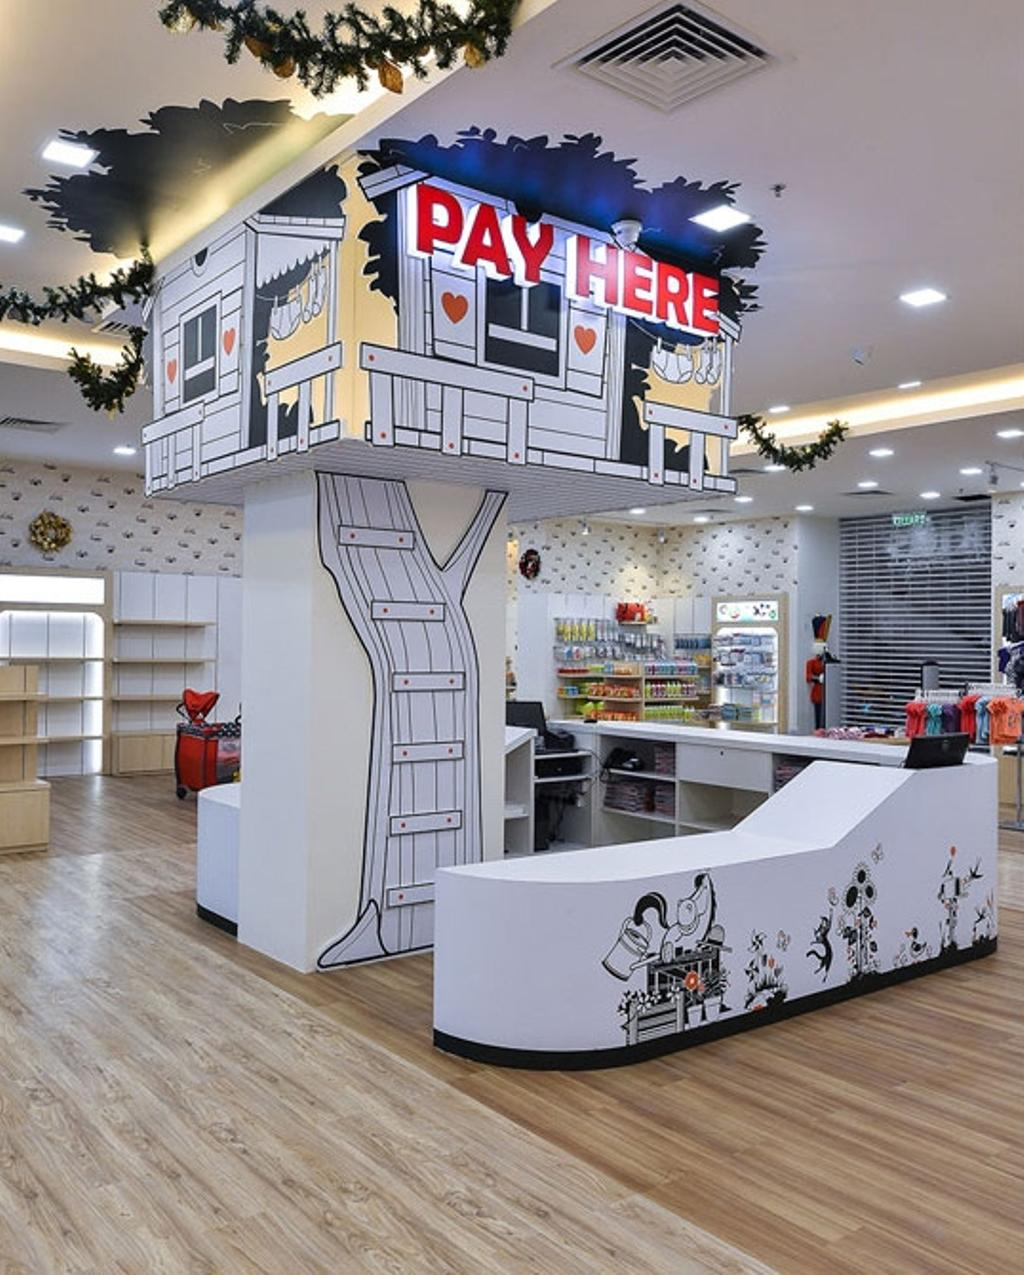 Kid's Gallery, Commercial, Interior Designer, Spazio Design Sdn Bhd, Traditional, Wallpaper, Decal, Departmental Store, Kids, Clothes, Clothing Store, Kiosk